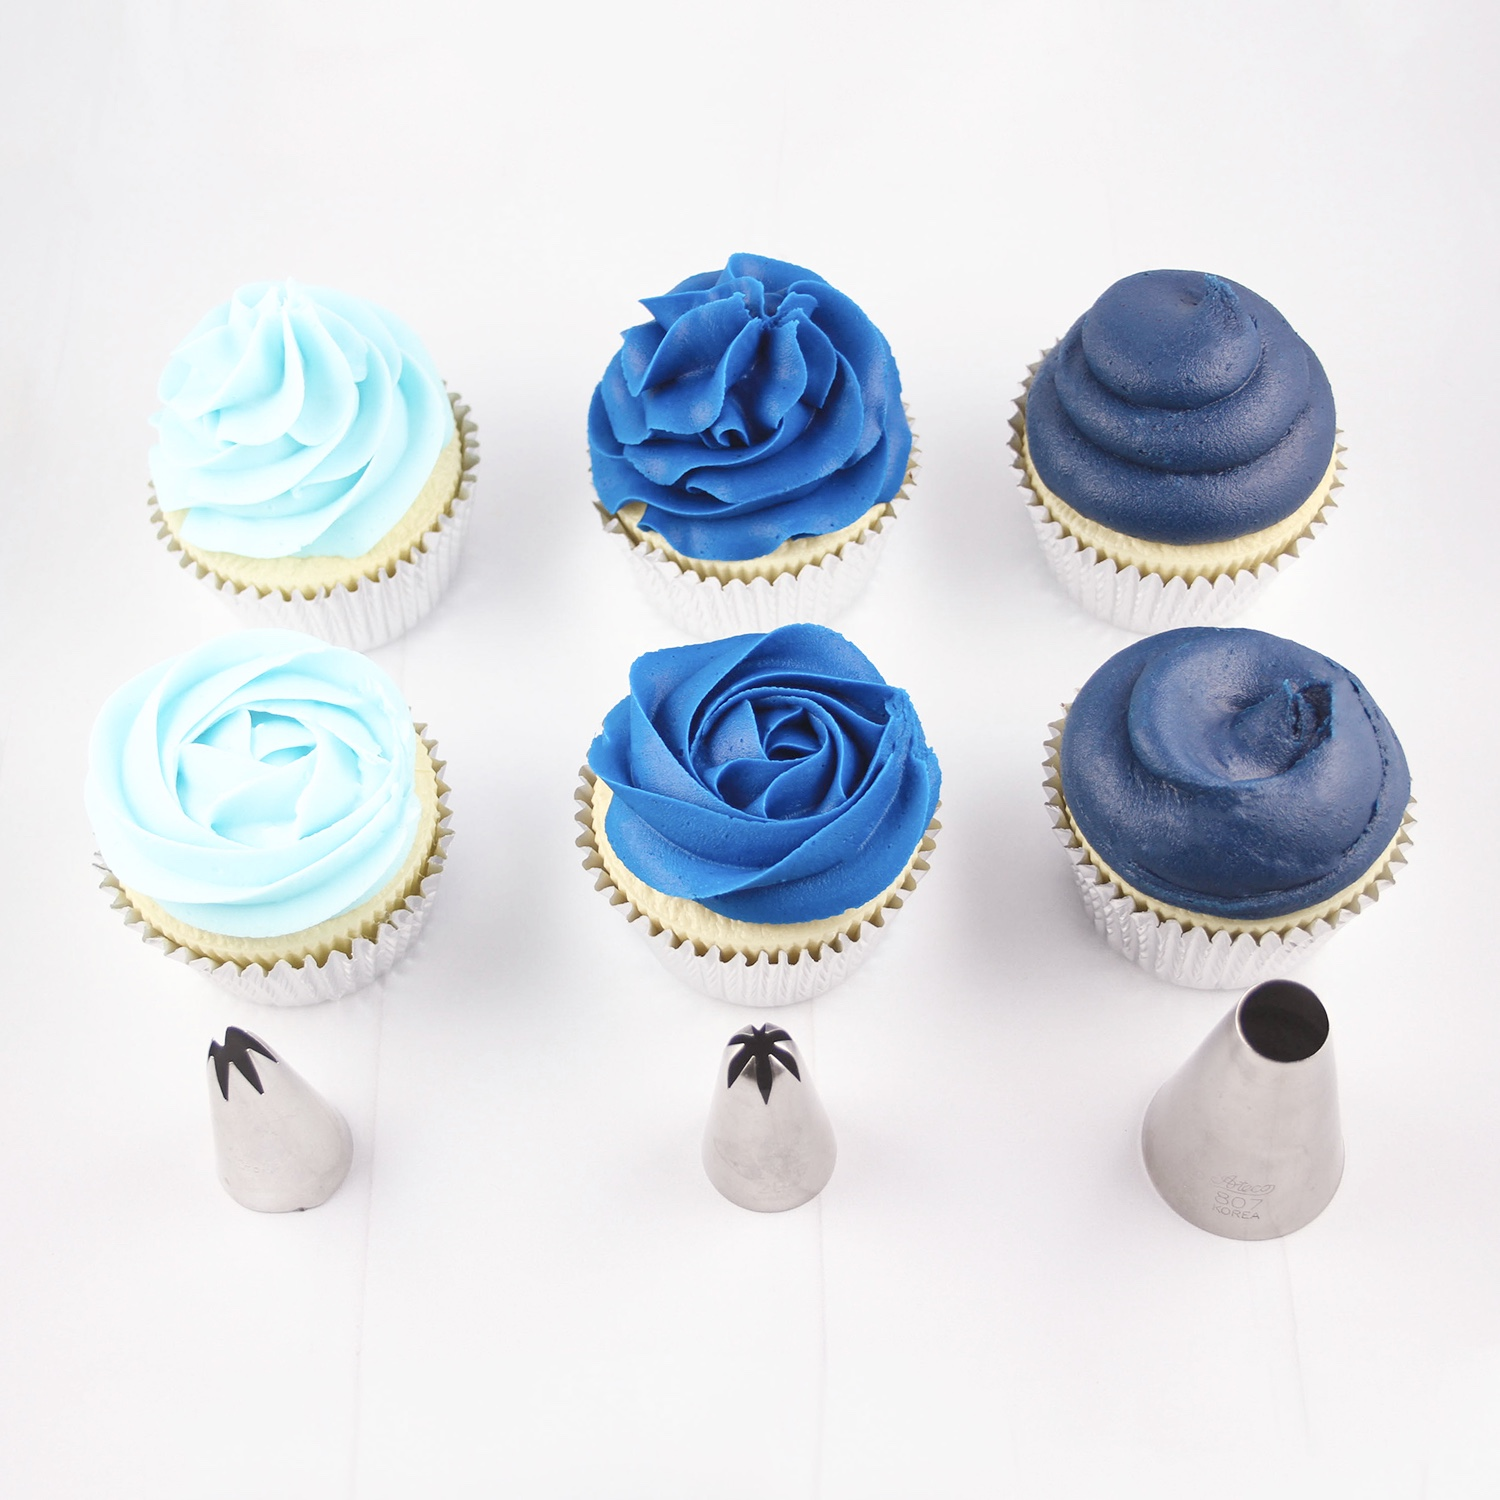 Shades of Blue Frosted Cupcakes